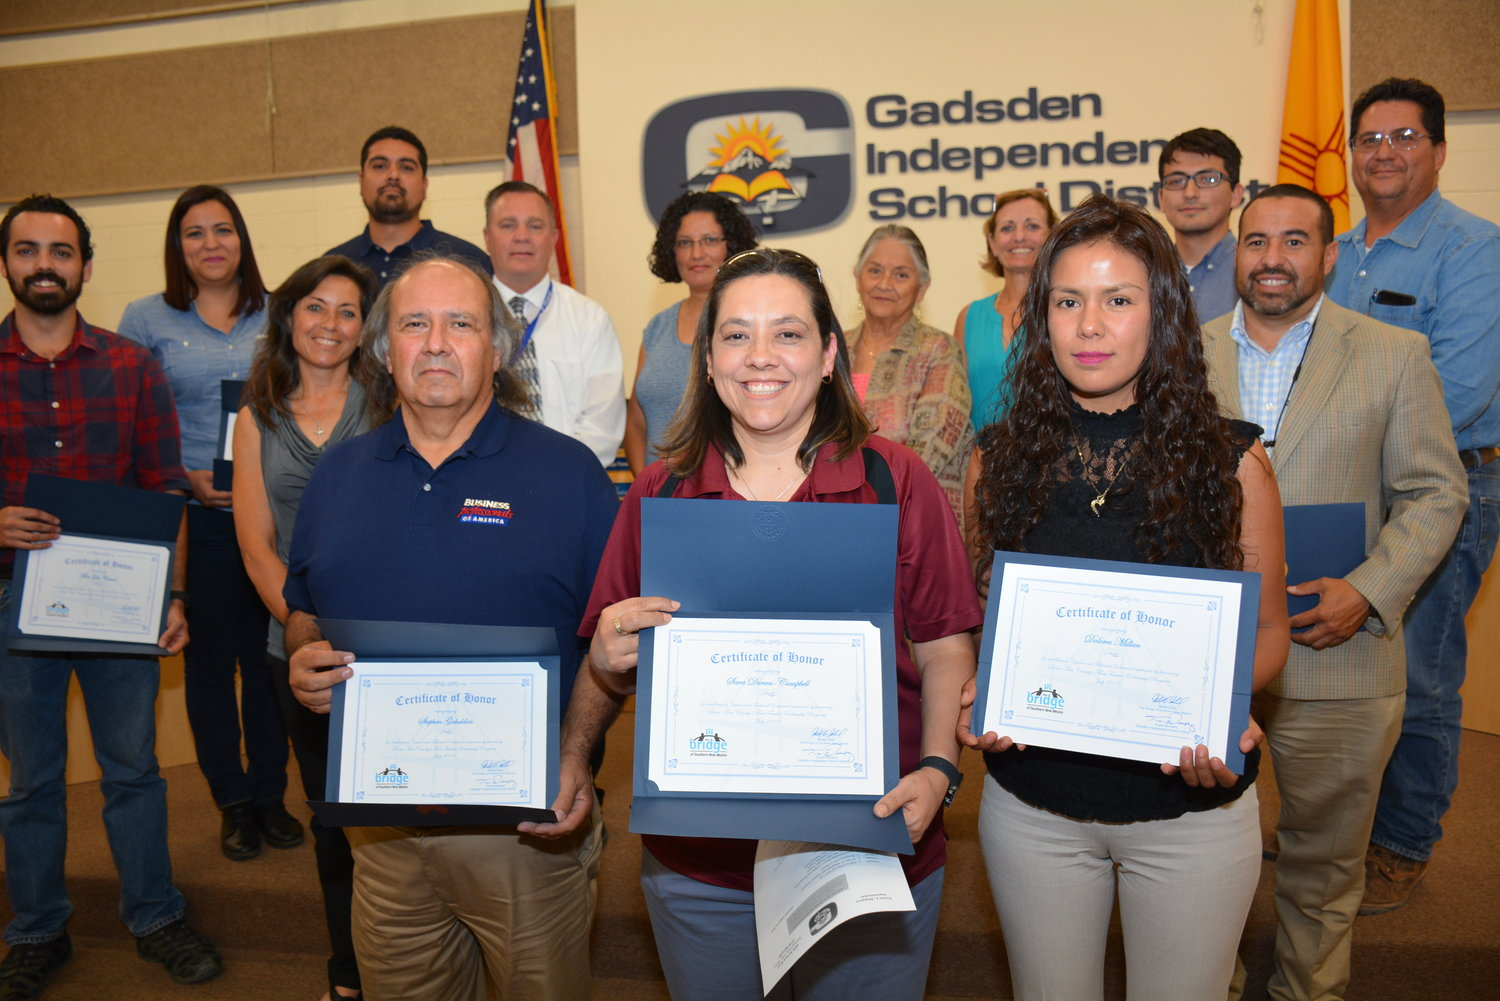 Gadsden teachers pave the way for externships